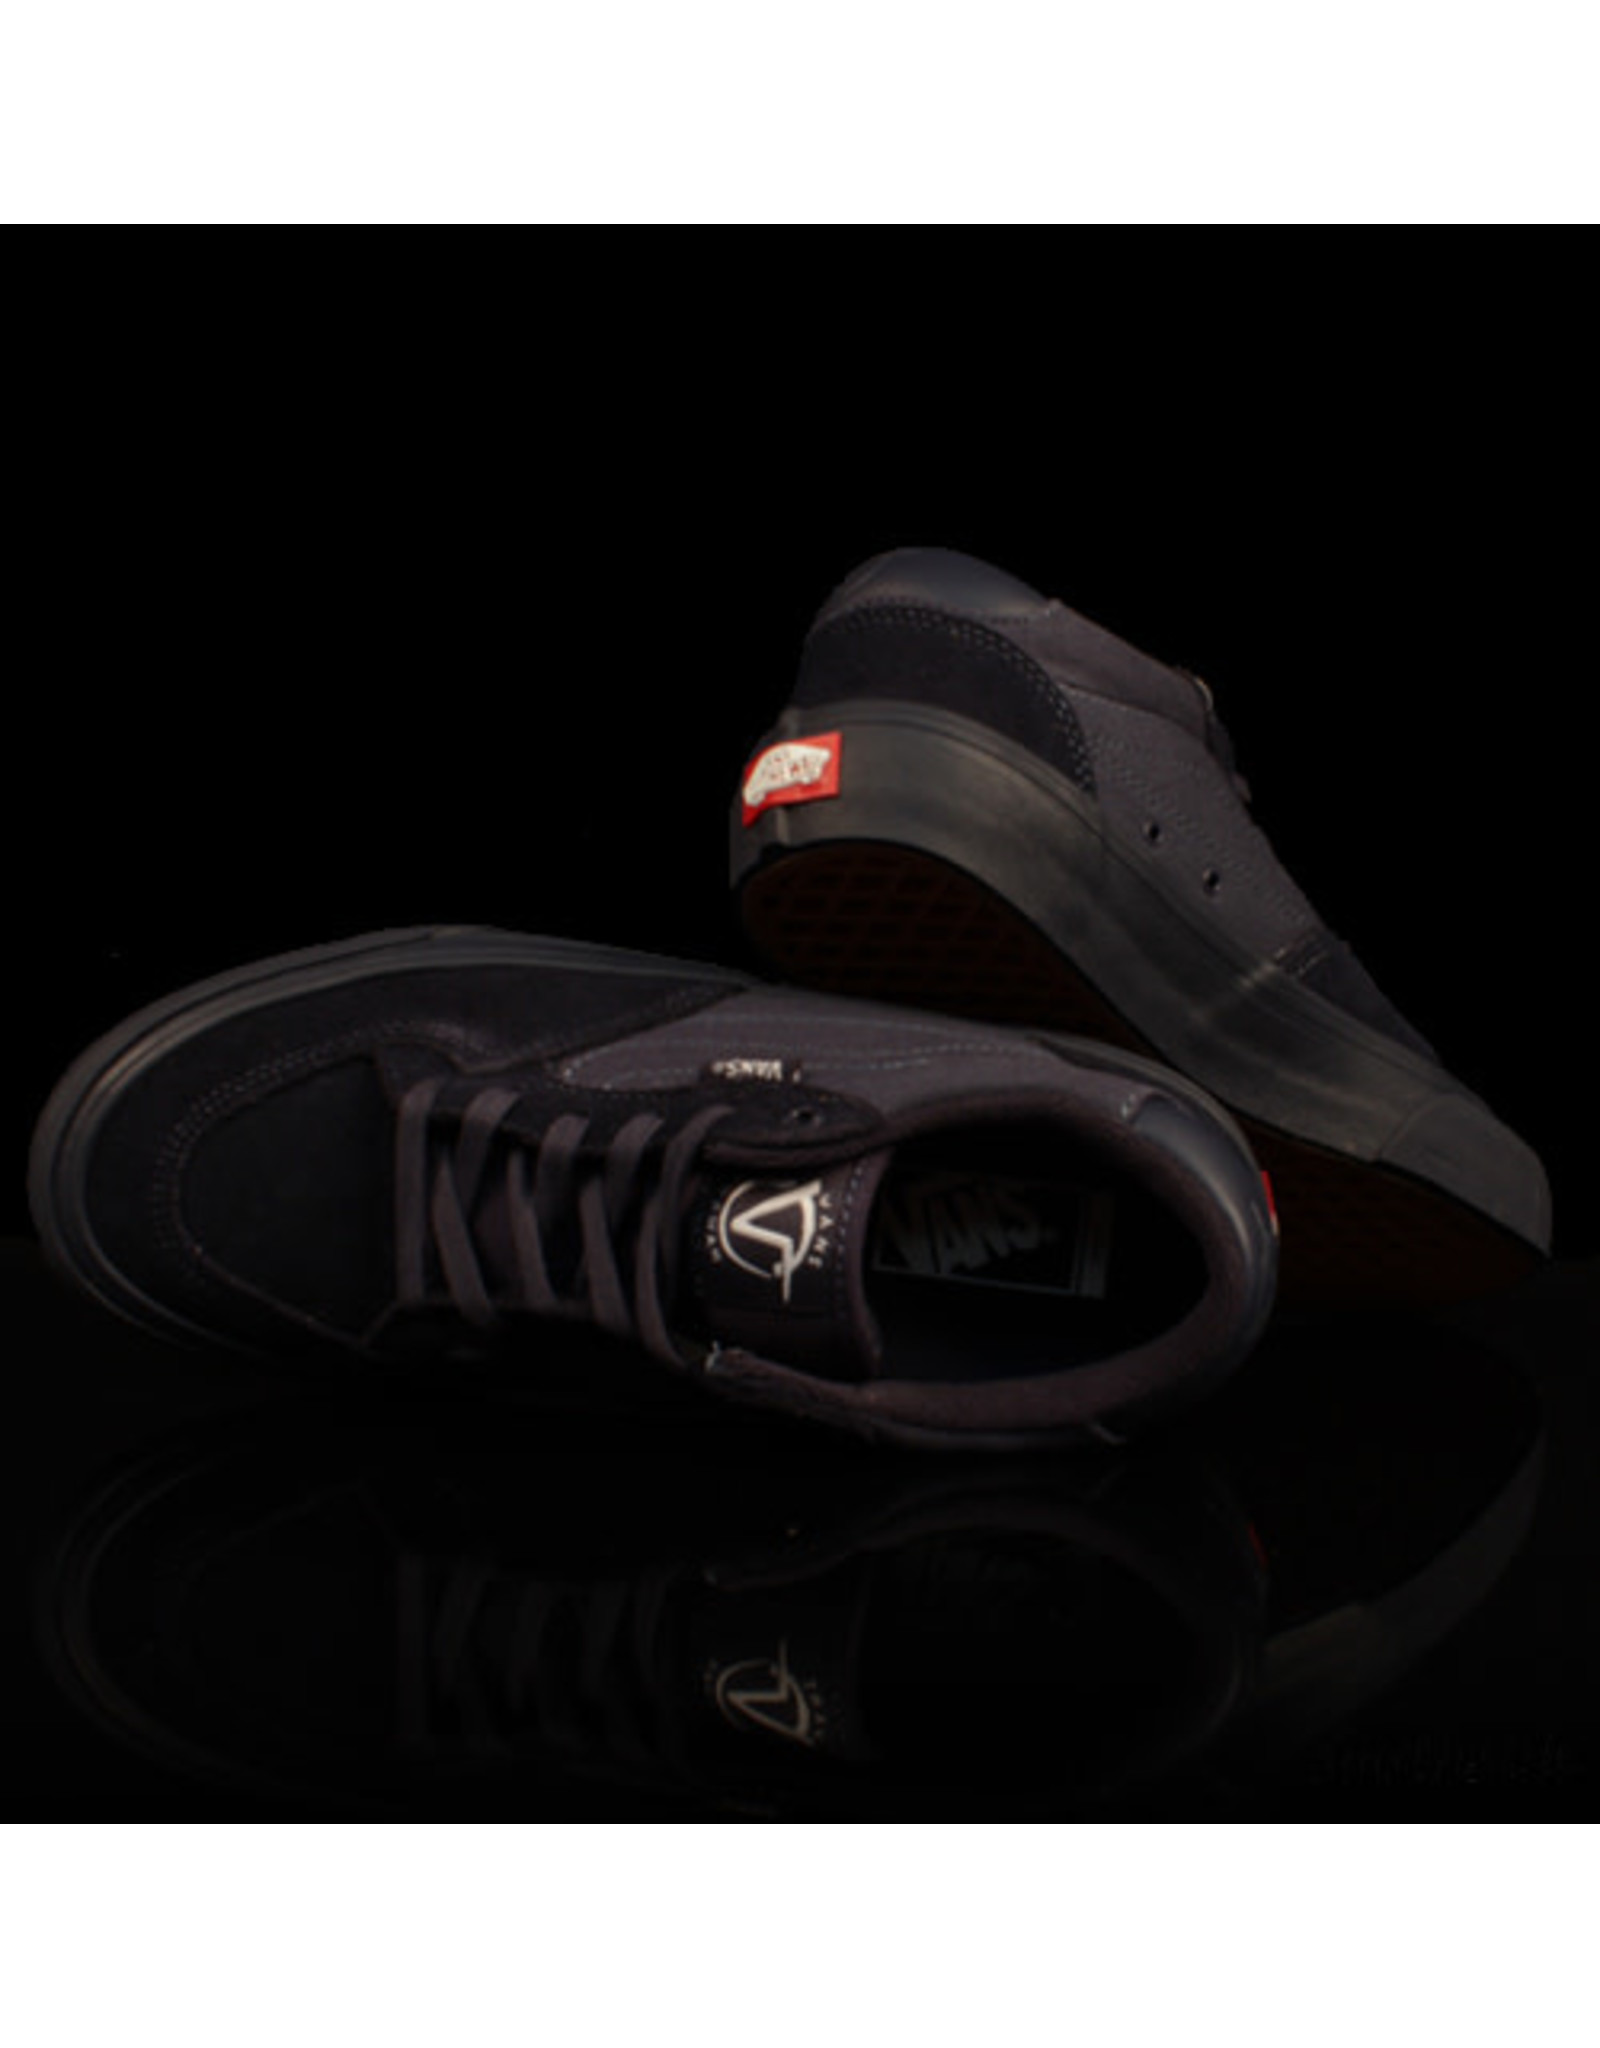 VANS Vans Rowan Pro Parisian Night